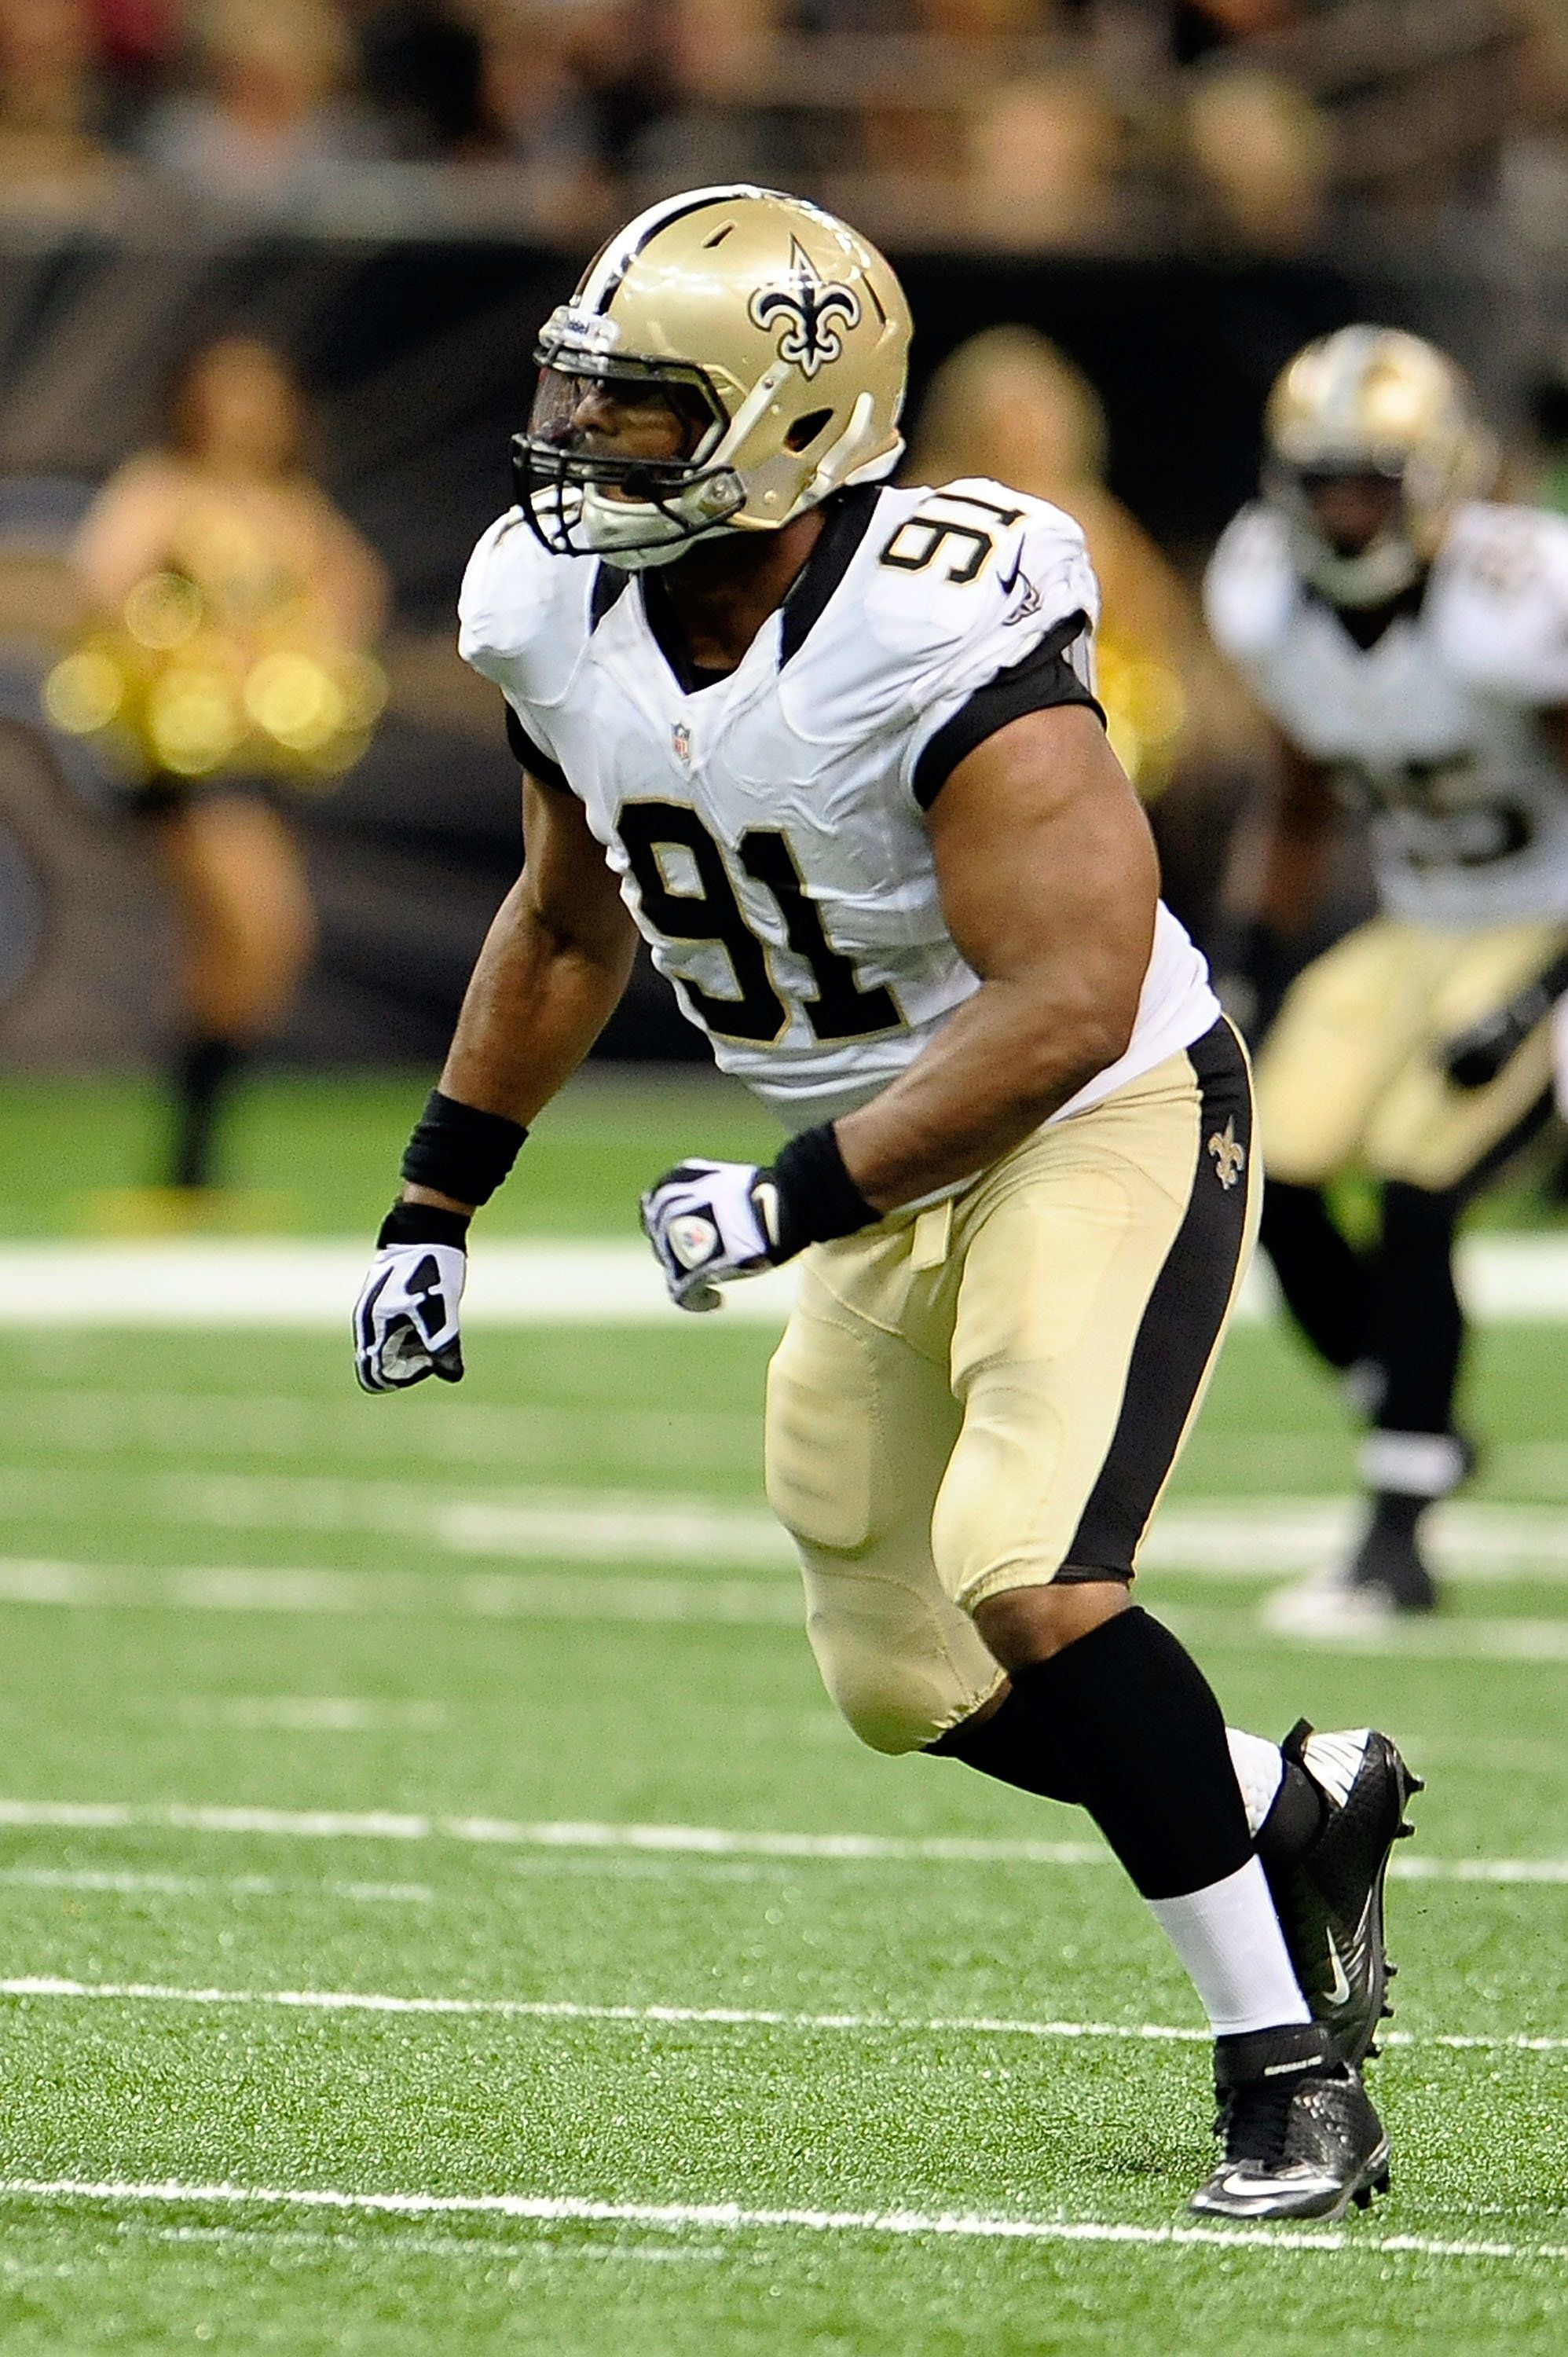 NEW ORLEANS, LA - AUGUST 16:  Will Smith #91 of the New Orleans Saints anticipates a play during a preseason game against the Oakland Raiders at the Mercedes-Benz Superdome on August 16, 2013 in New Orleans, Louisiana.  The Saints won 28-20.  (Photo by Stacy Revere/Getty Images)